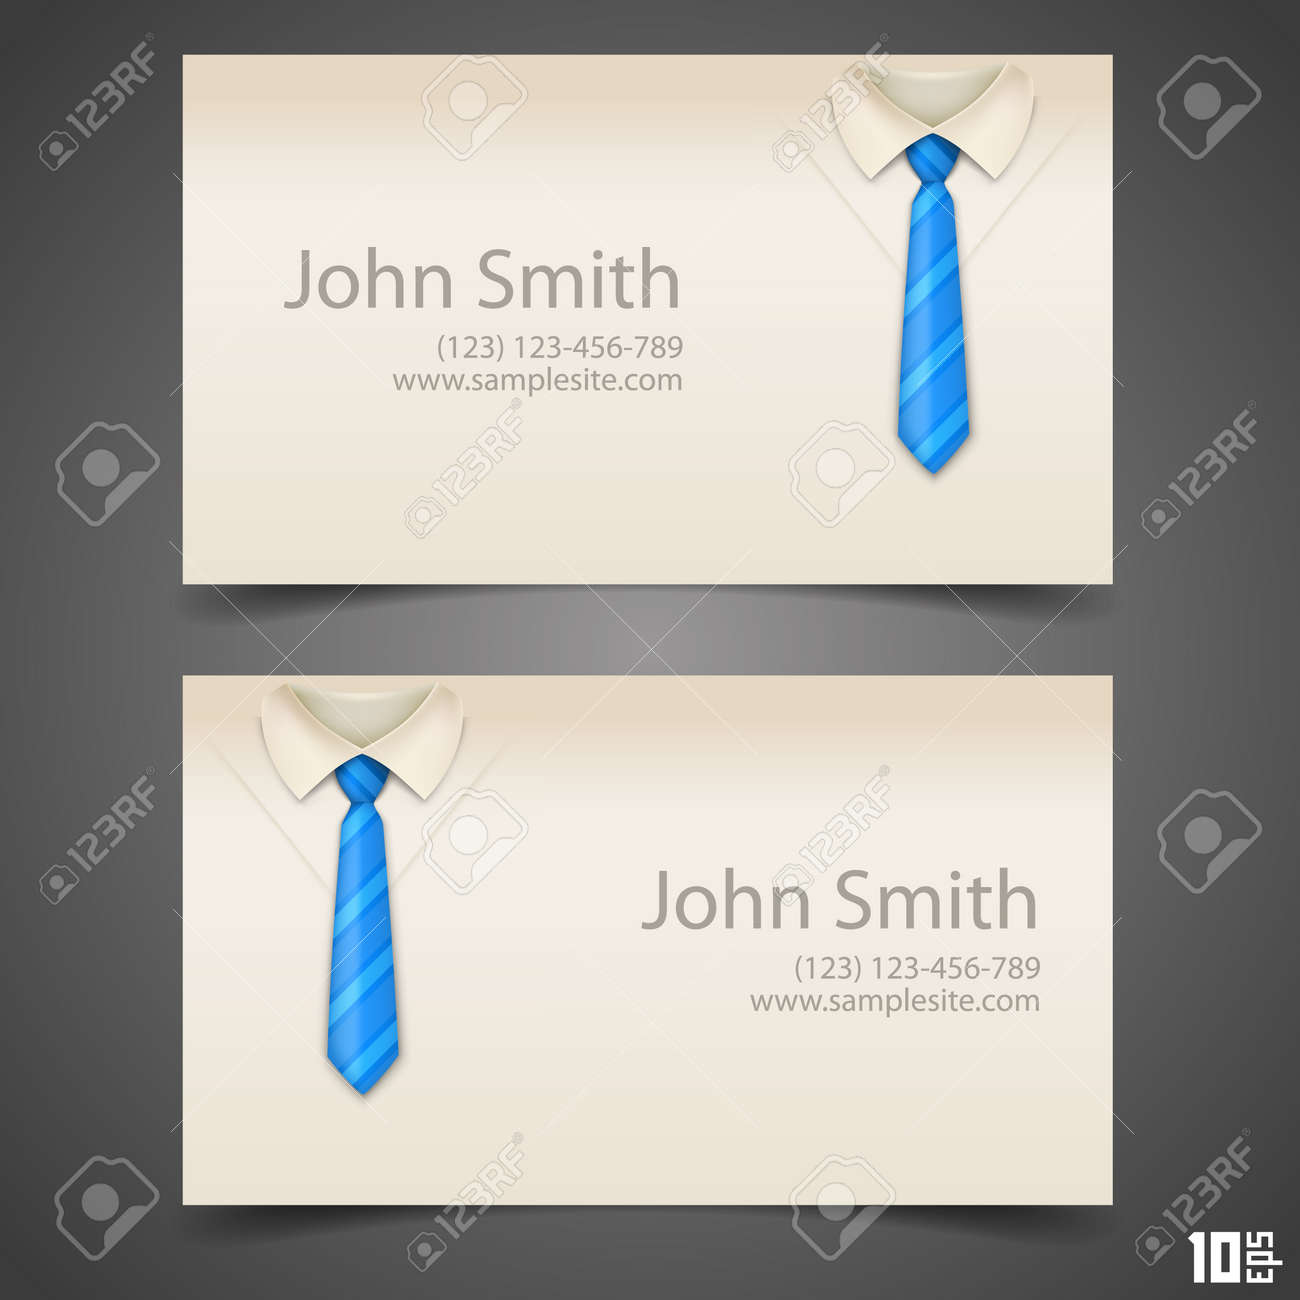 Shirt and tie vector business card art vector illustration shirt and tie vector business card art vector illustration stock vector 36450257 magicingreecefo Choice Image